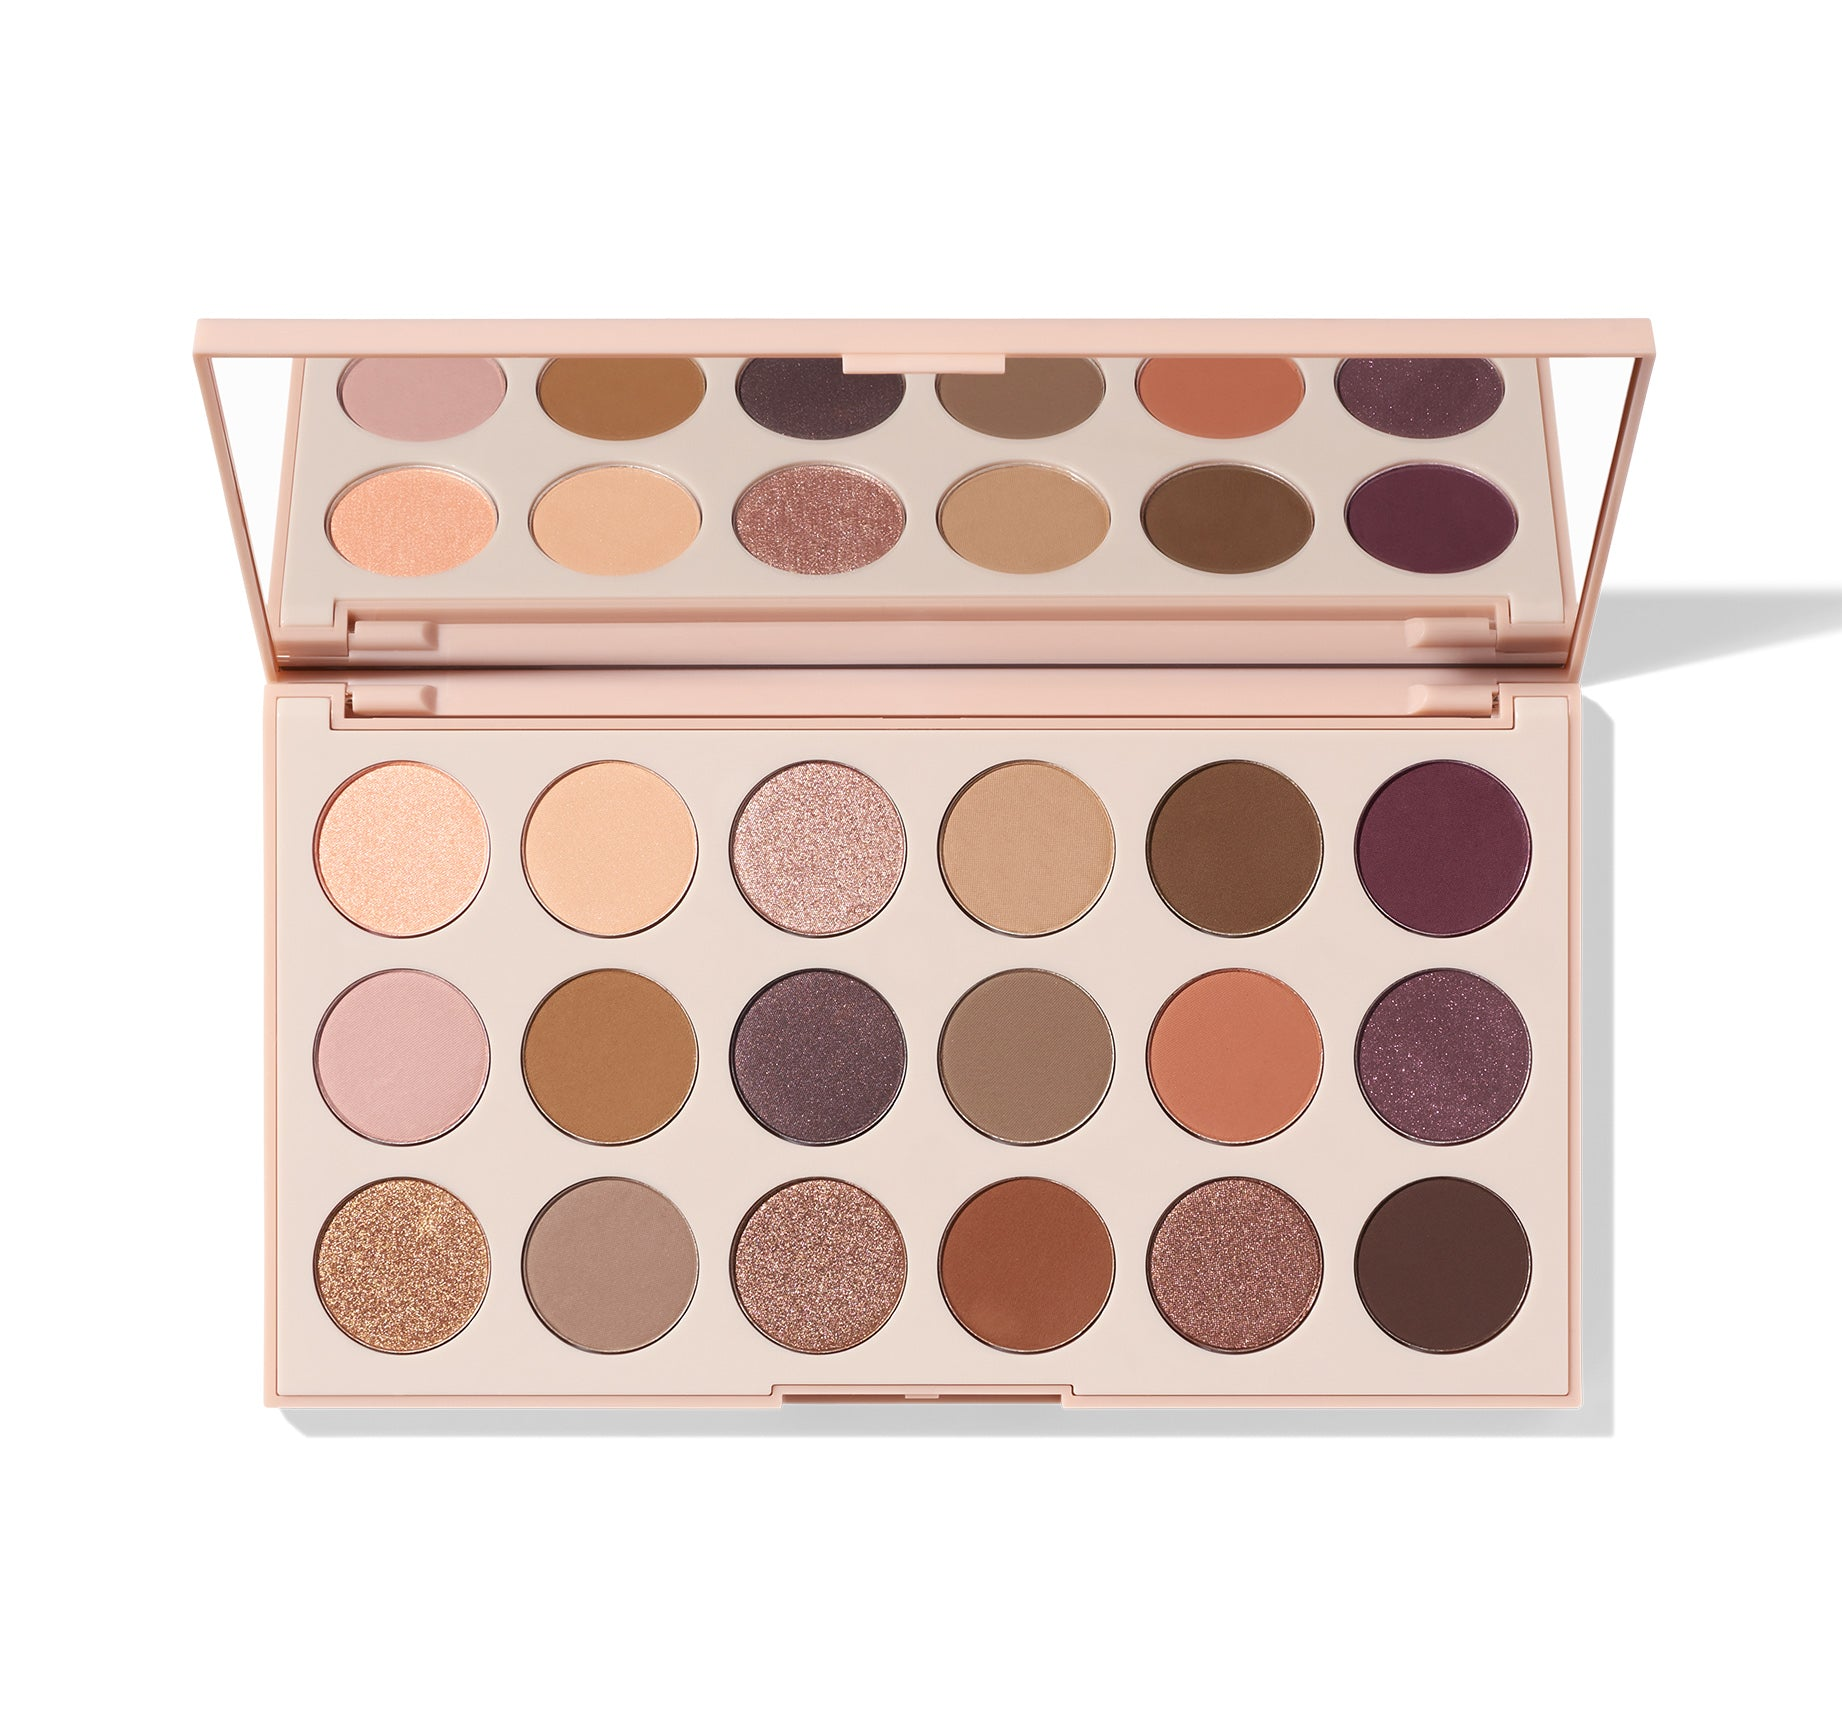 18T TRUTH OR BARE ARTISTRY PALETTE, view larger image